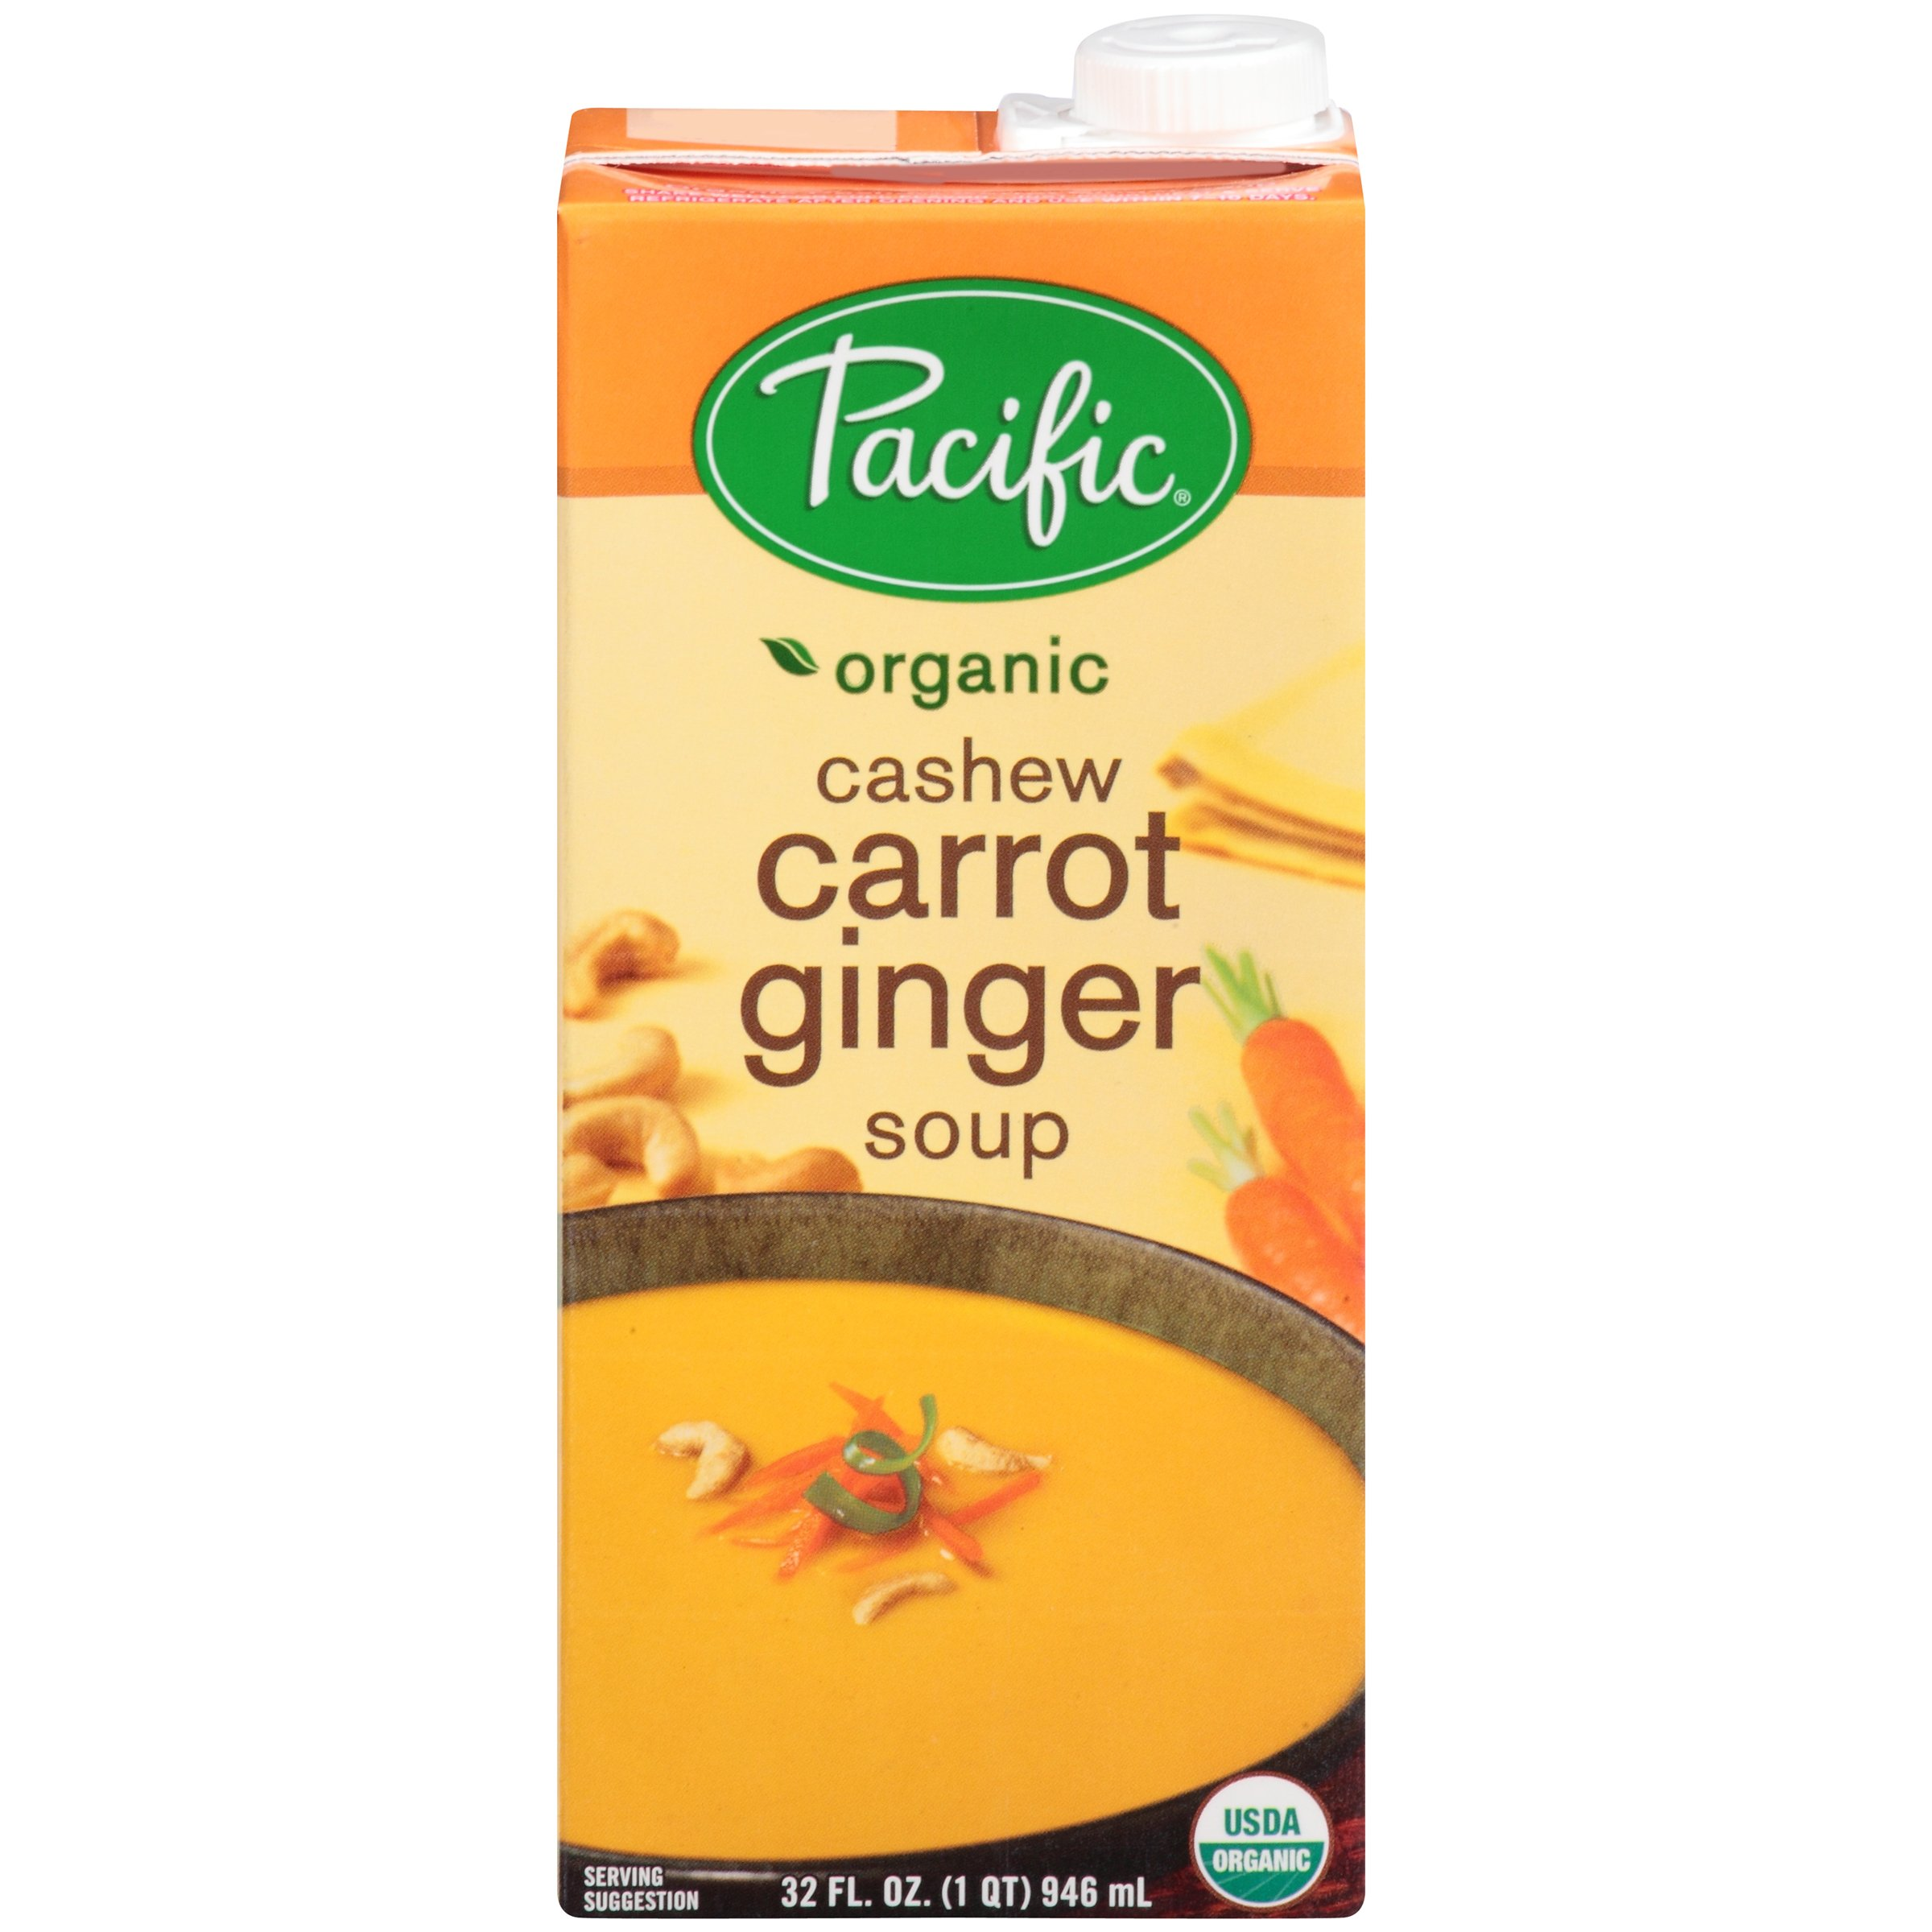 Pacific Foods Soup, Cashew Carrot Ginger, 32-Ounce Cartons (Pack of 12)